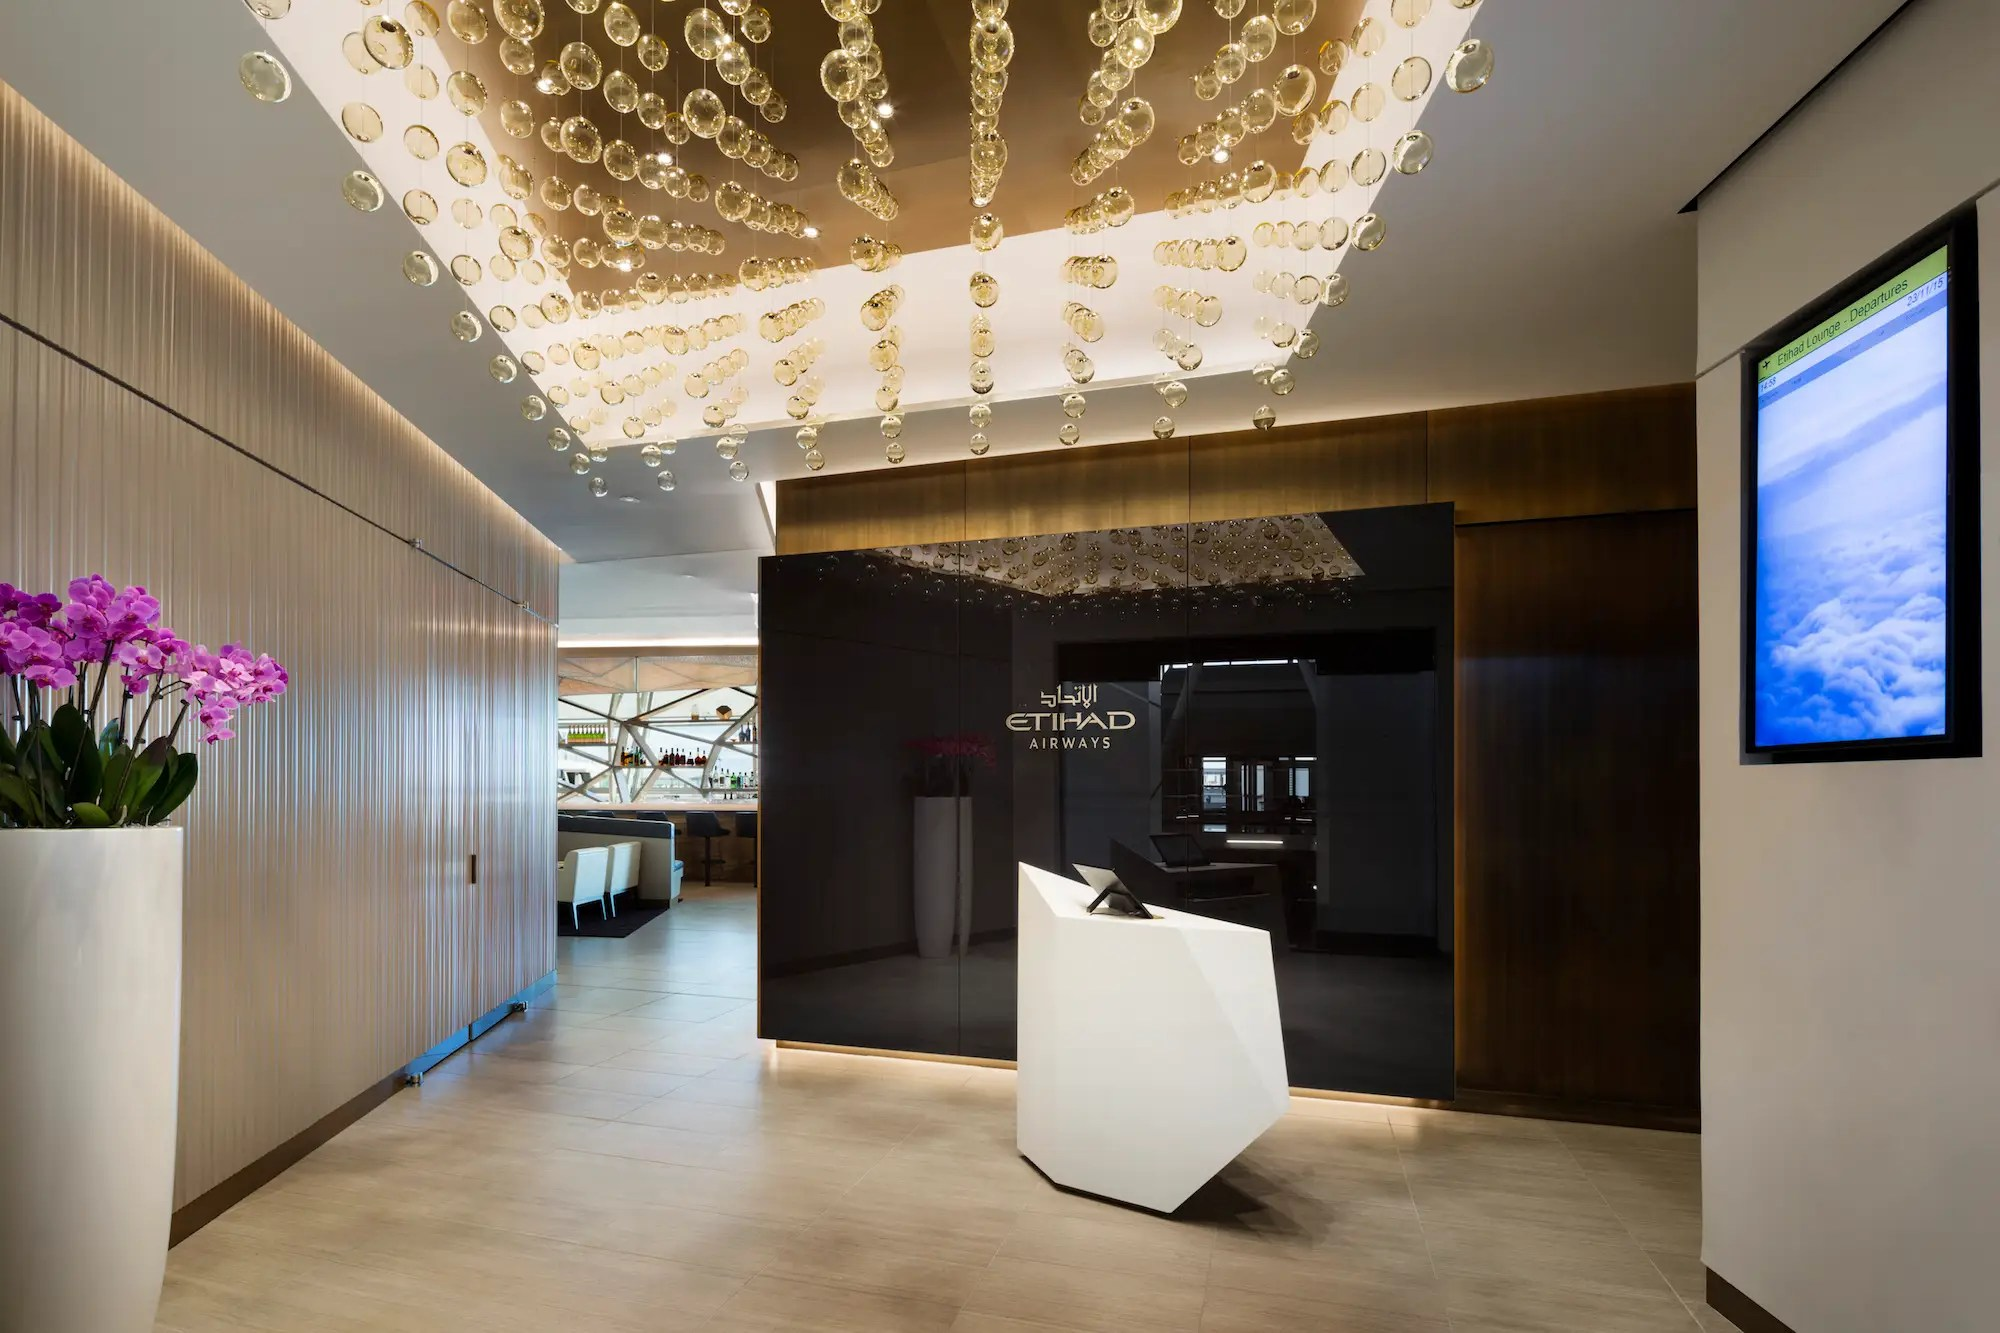 Located in Terminal 4 at JFK, the lounge is stylish and modern without being garish.